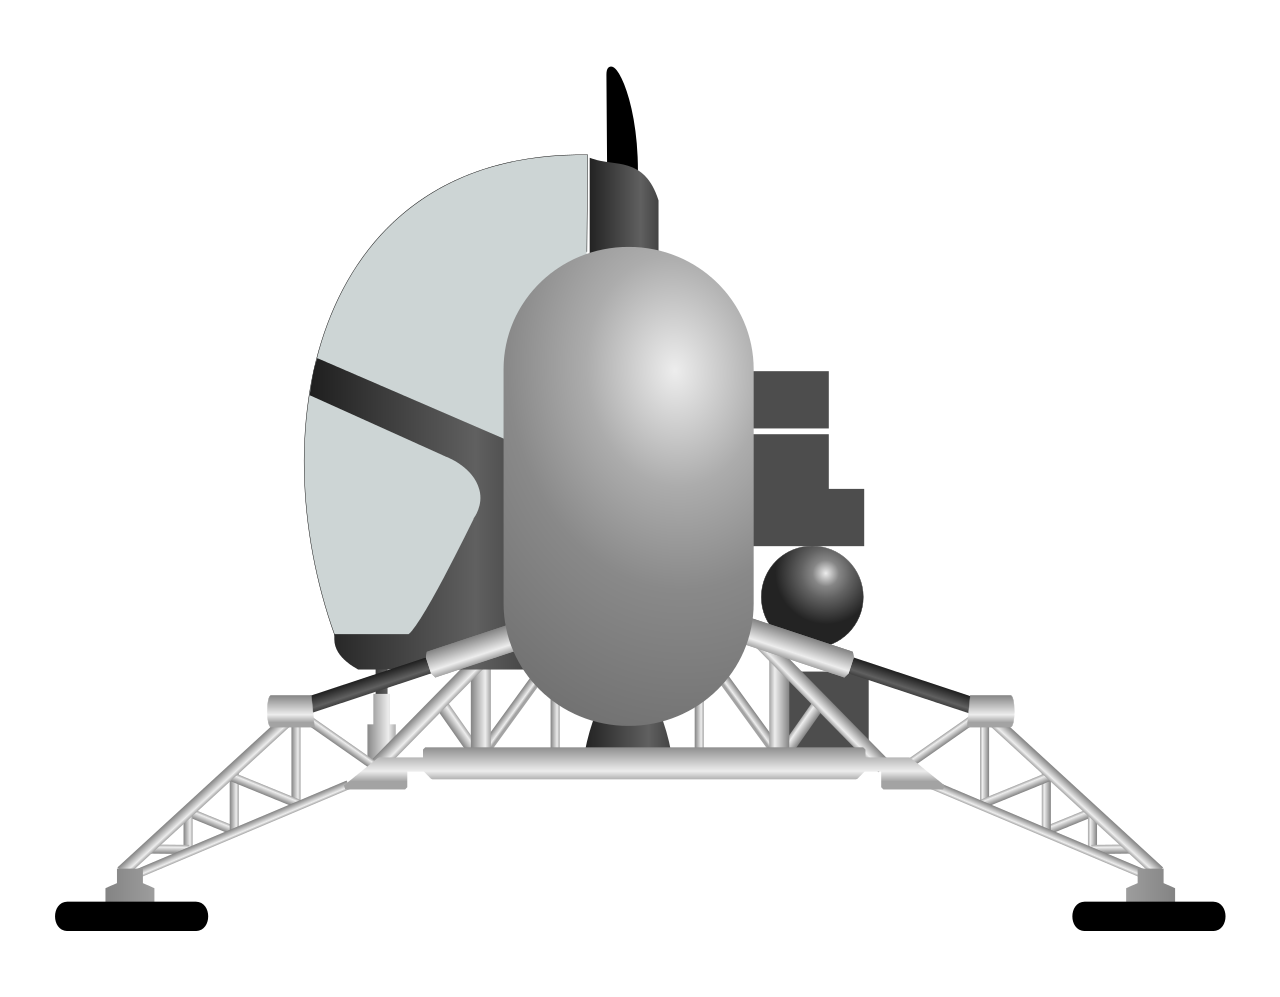 apollo spacecraft clipart - HD 1280×997